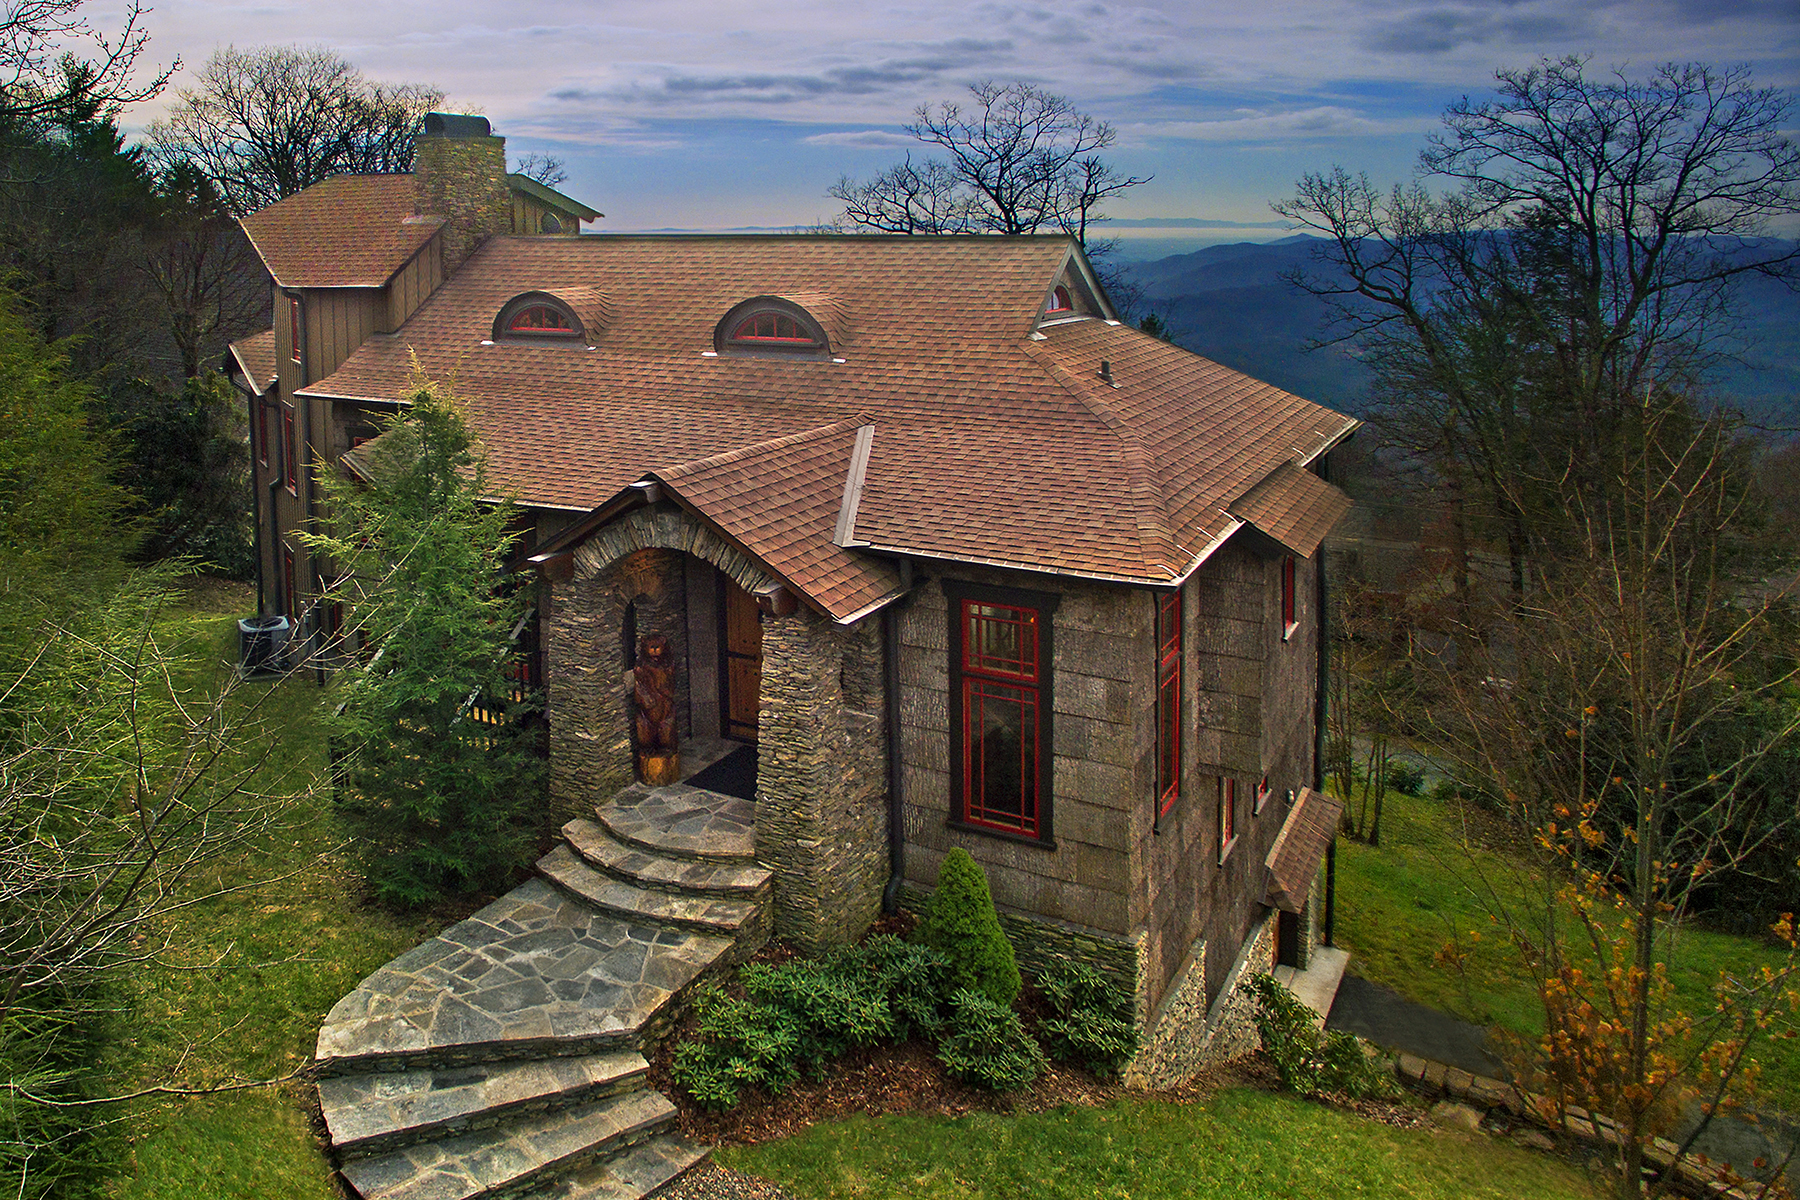 Single Family Home for Sale at BLOWING ROCK - LAUREL PARK 157 Dogwood Ln, Blowing Rock, North Carolina 28605 United States